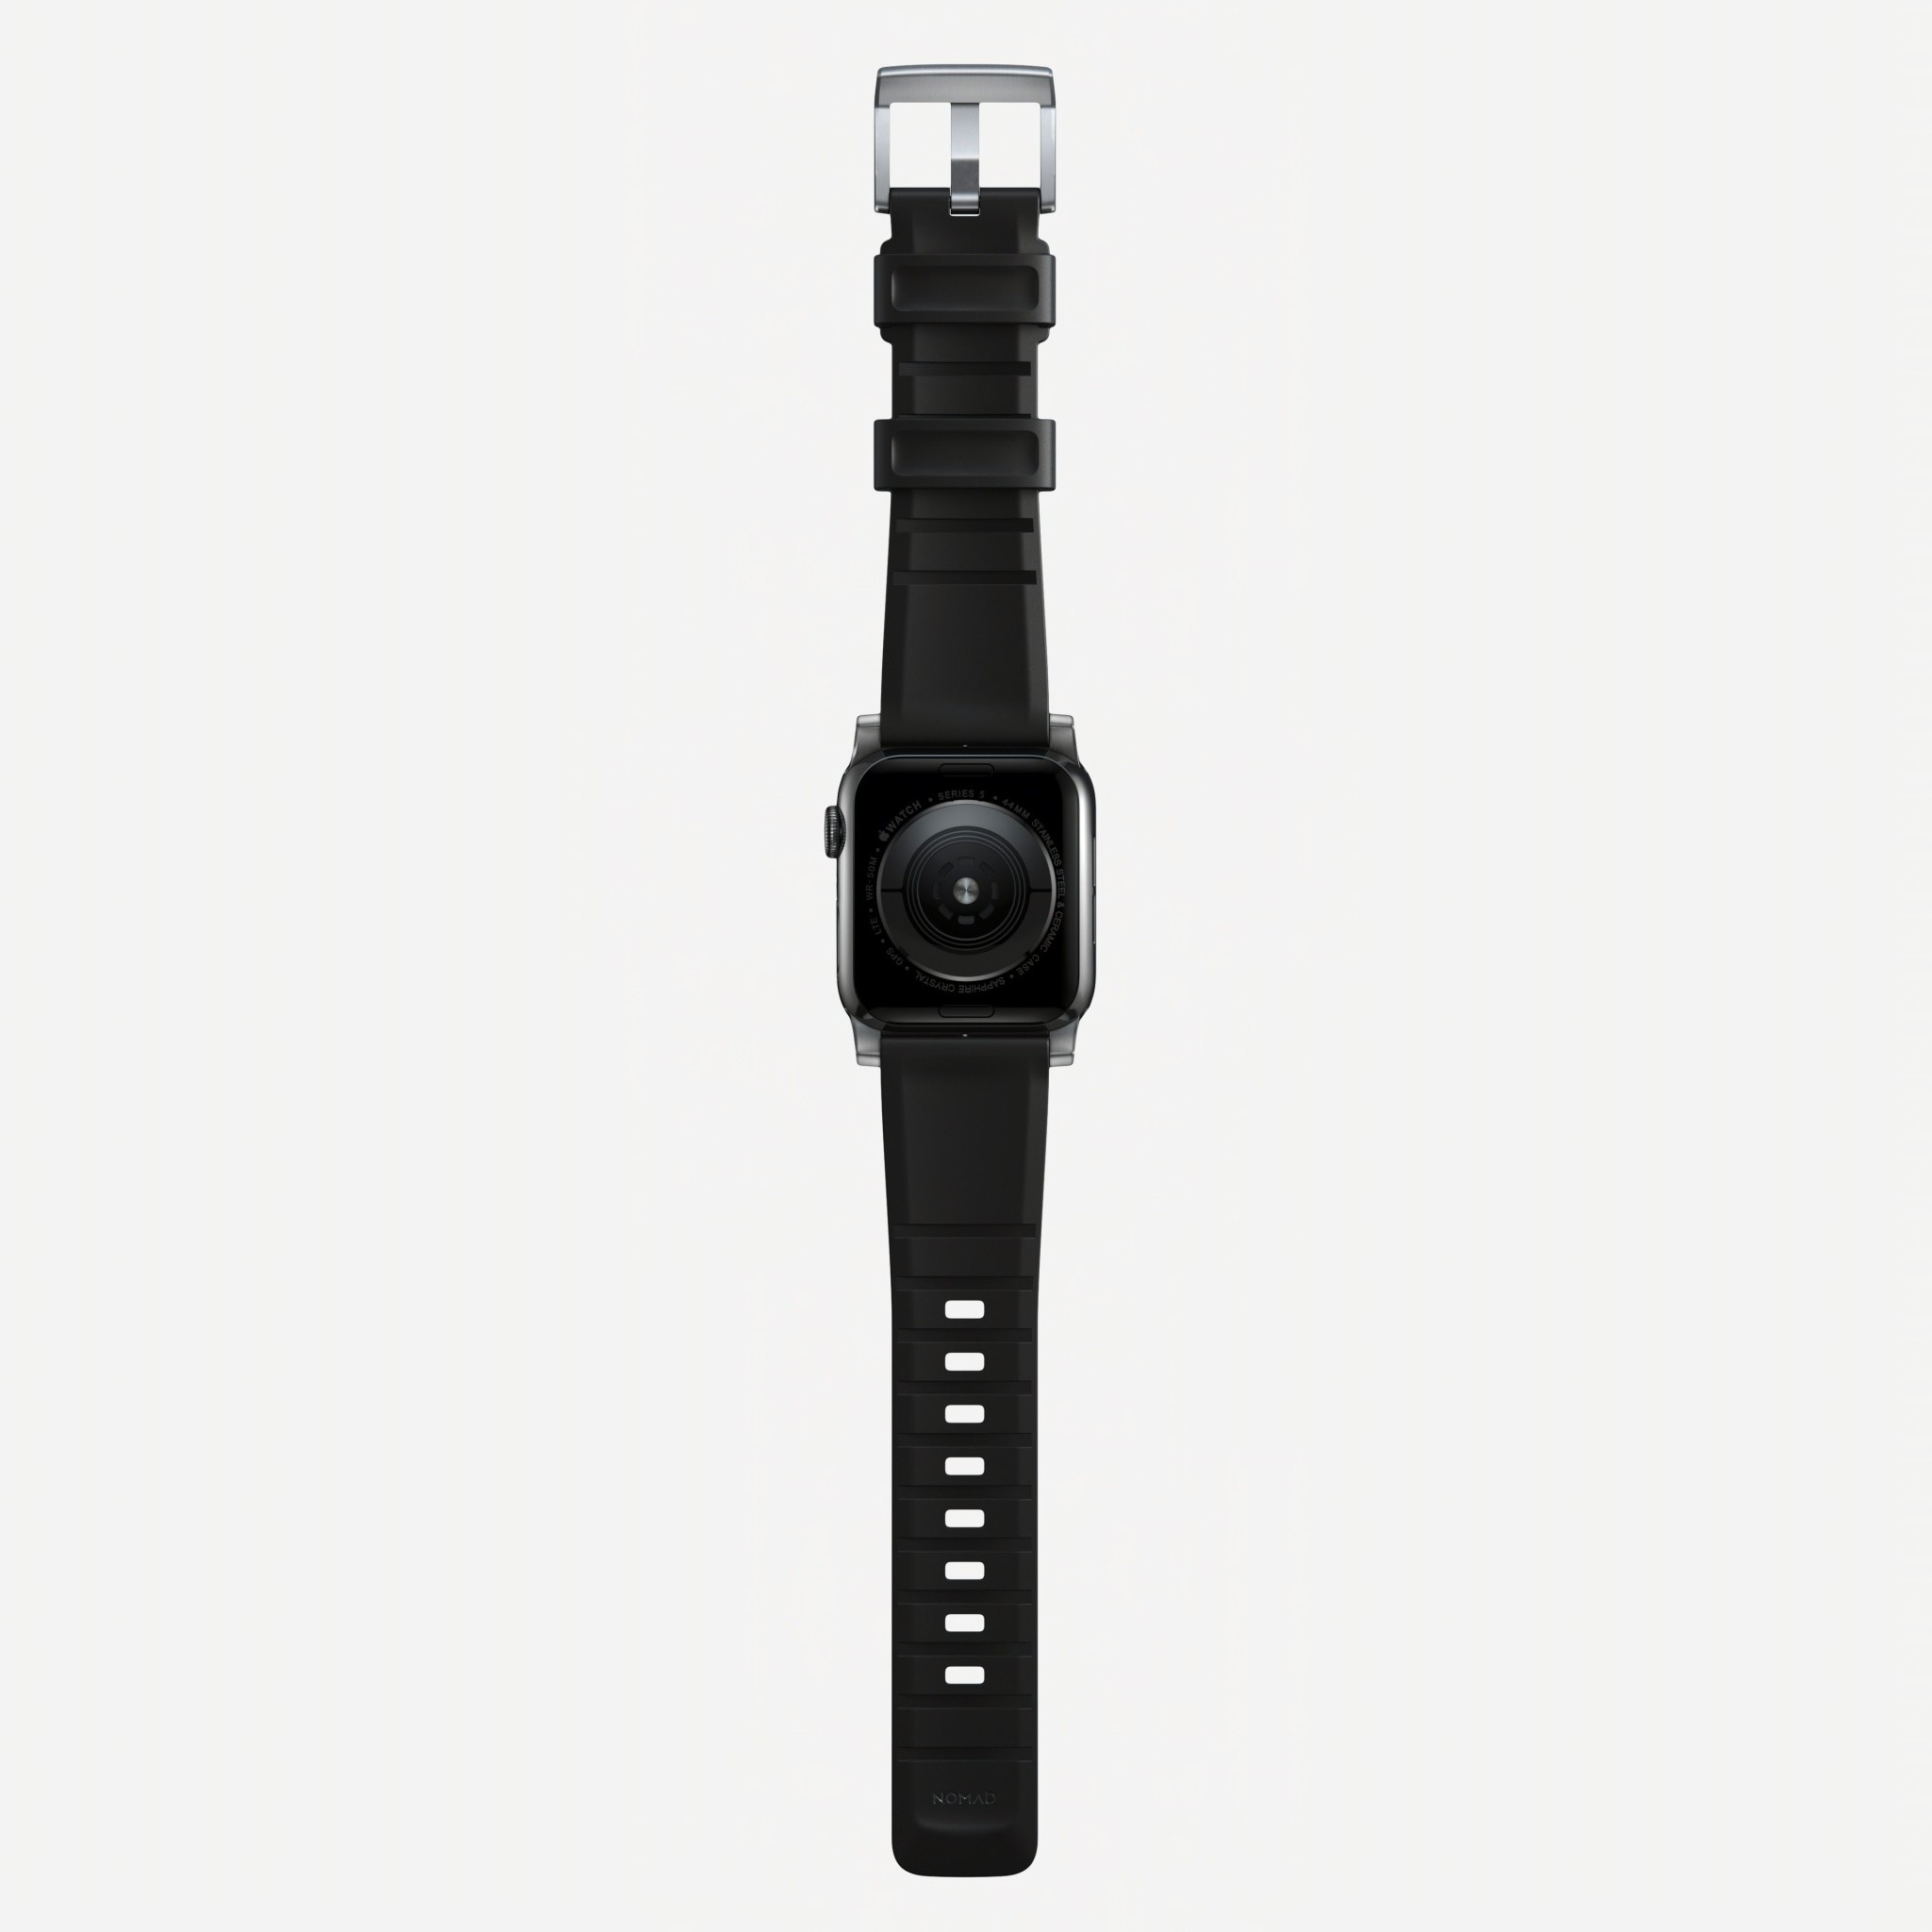 Nomad - Rugged Strap for Apple Watch 42/44mm - Silver hardware, NM1A41SN00